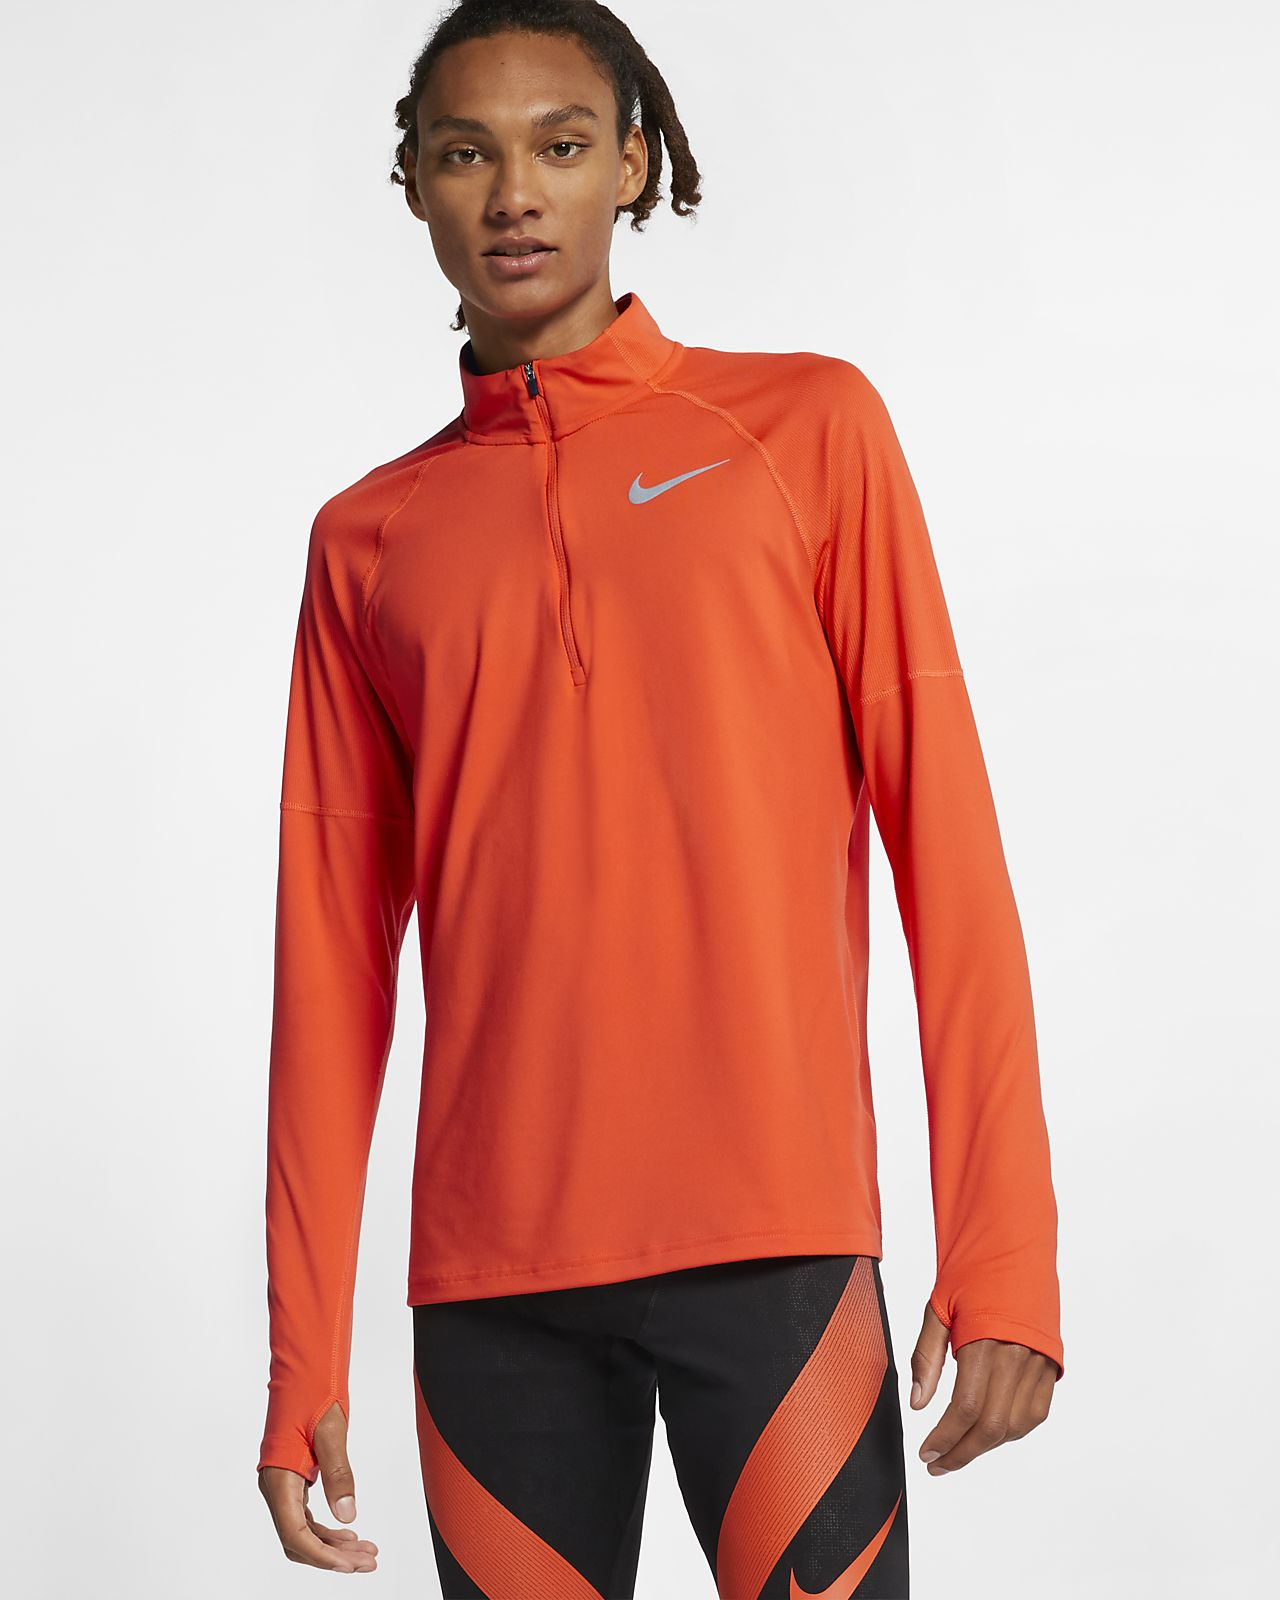 9b5d830b Nike Element Men's 1/2-Zip Running Top. Nike.com